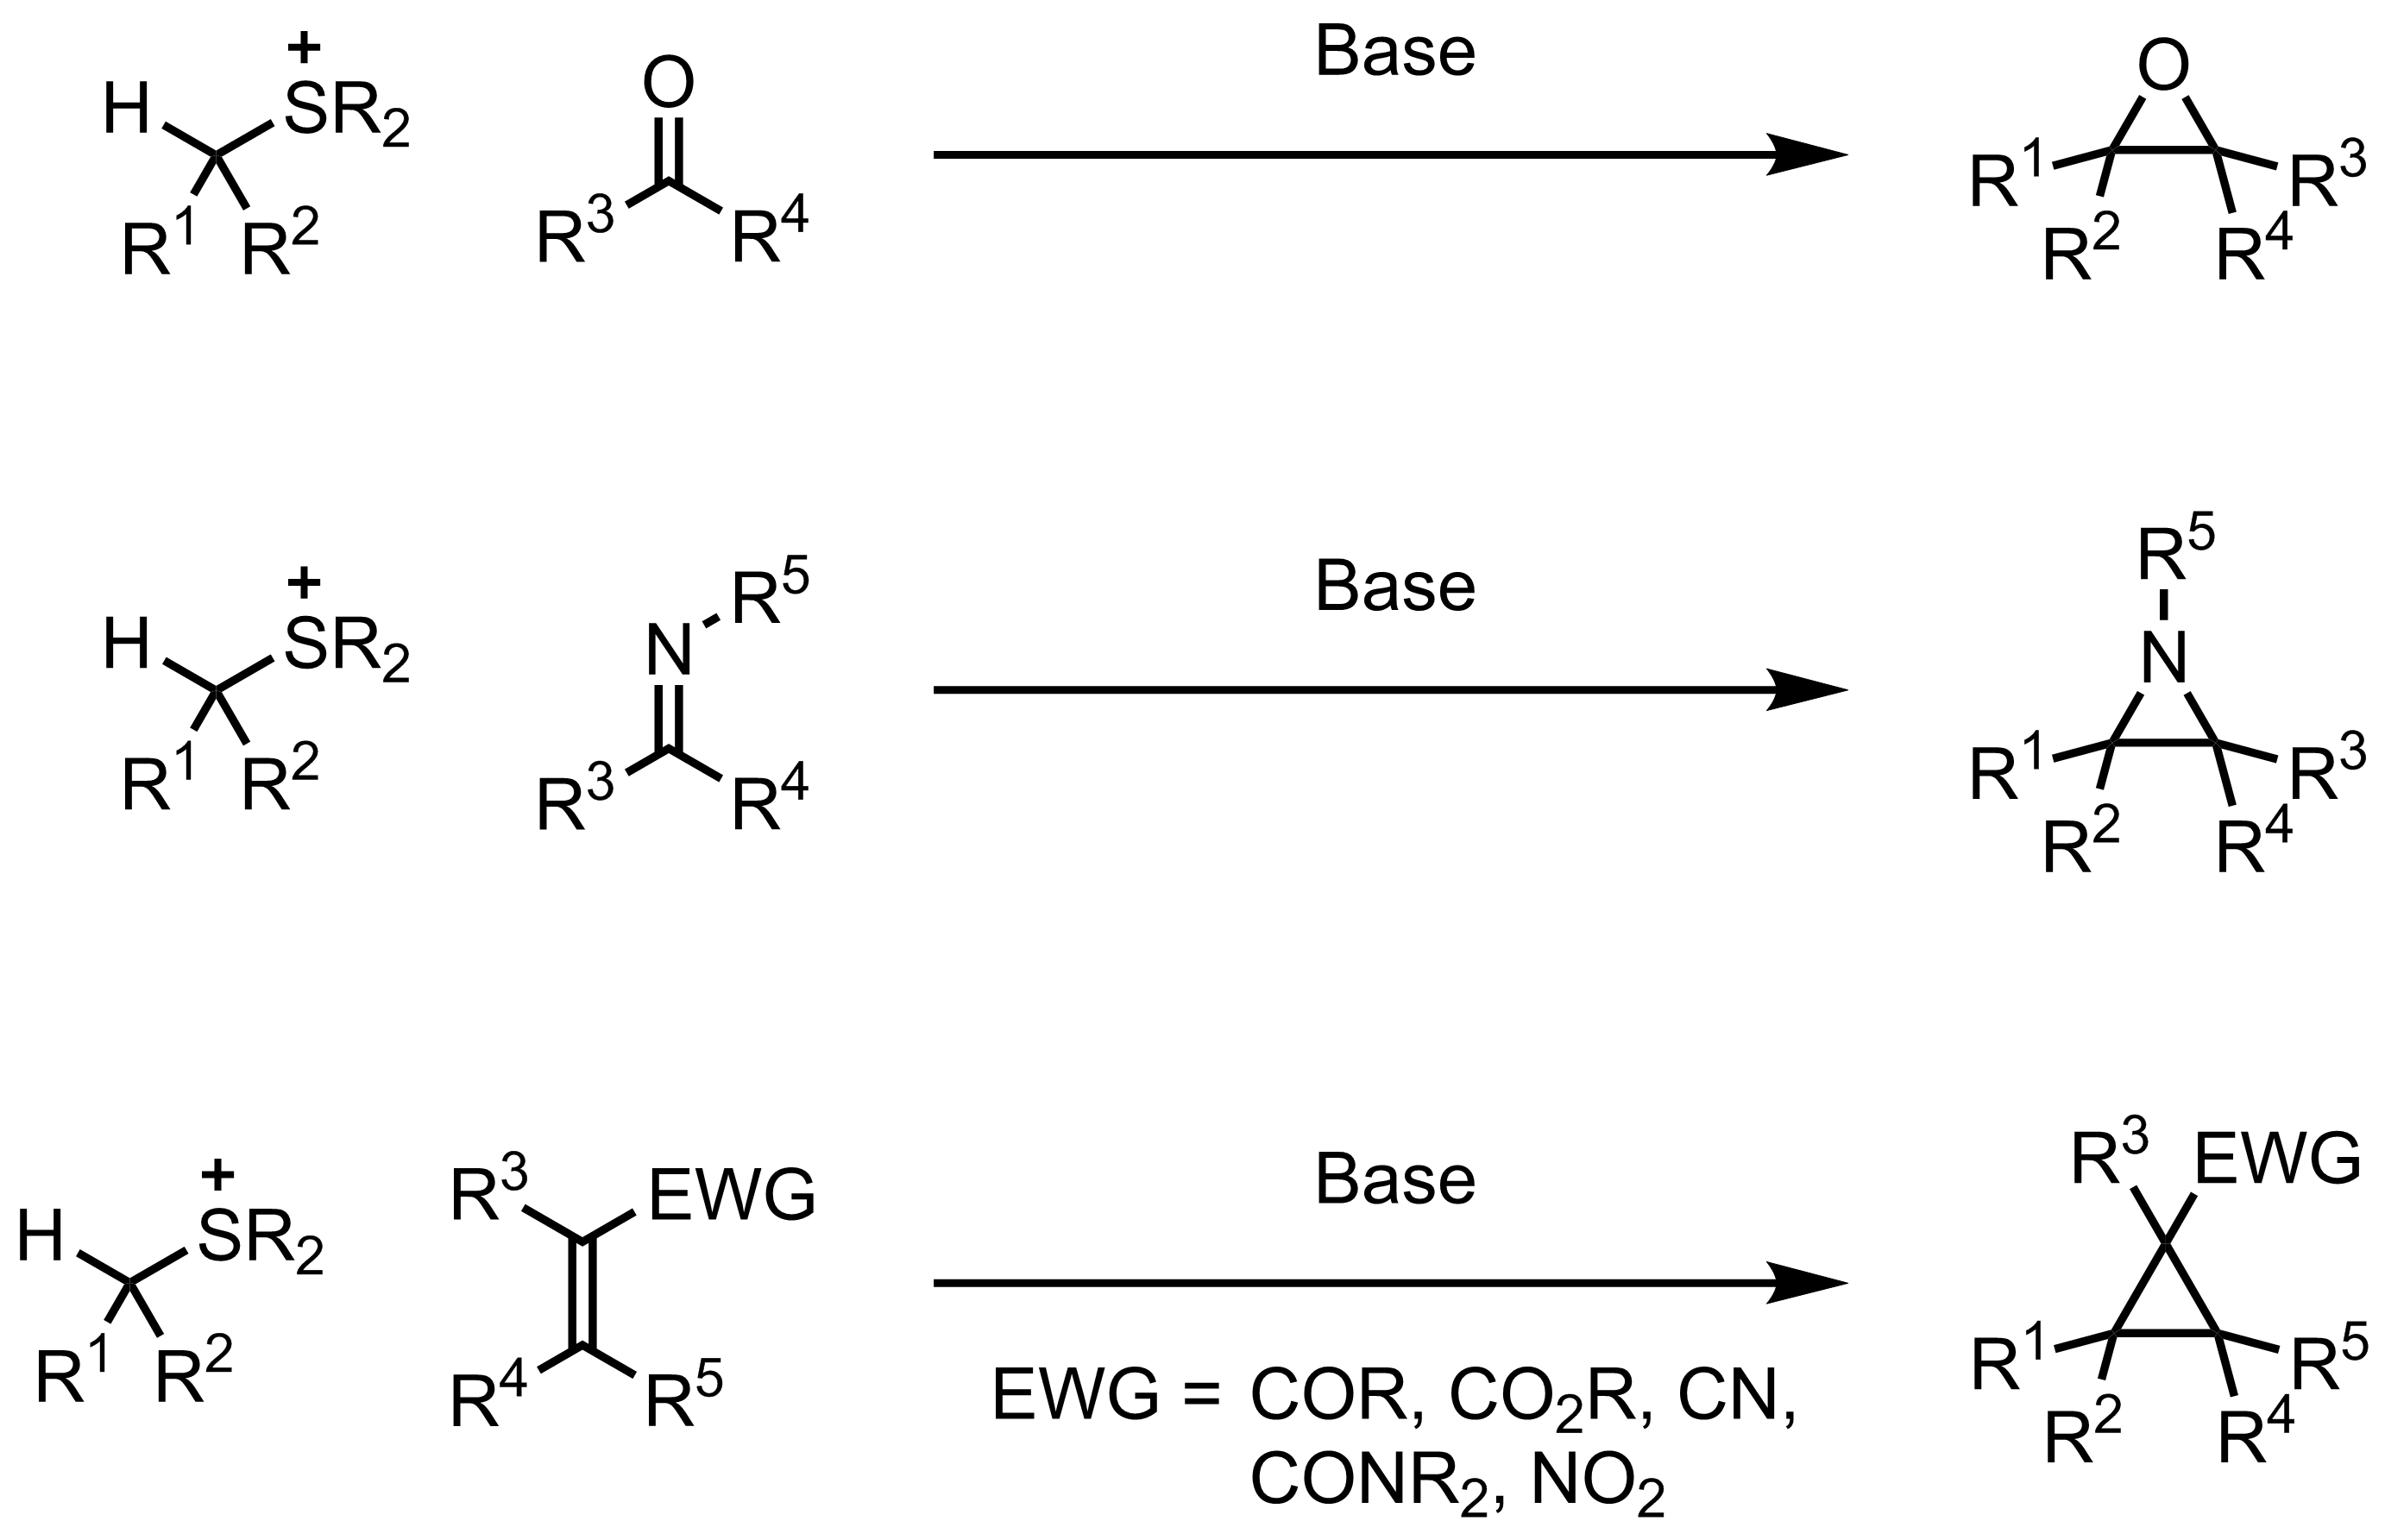 Schematic representation of the Johnson-Corey-Chaykovsky Reaction.